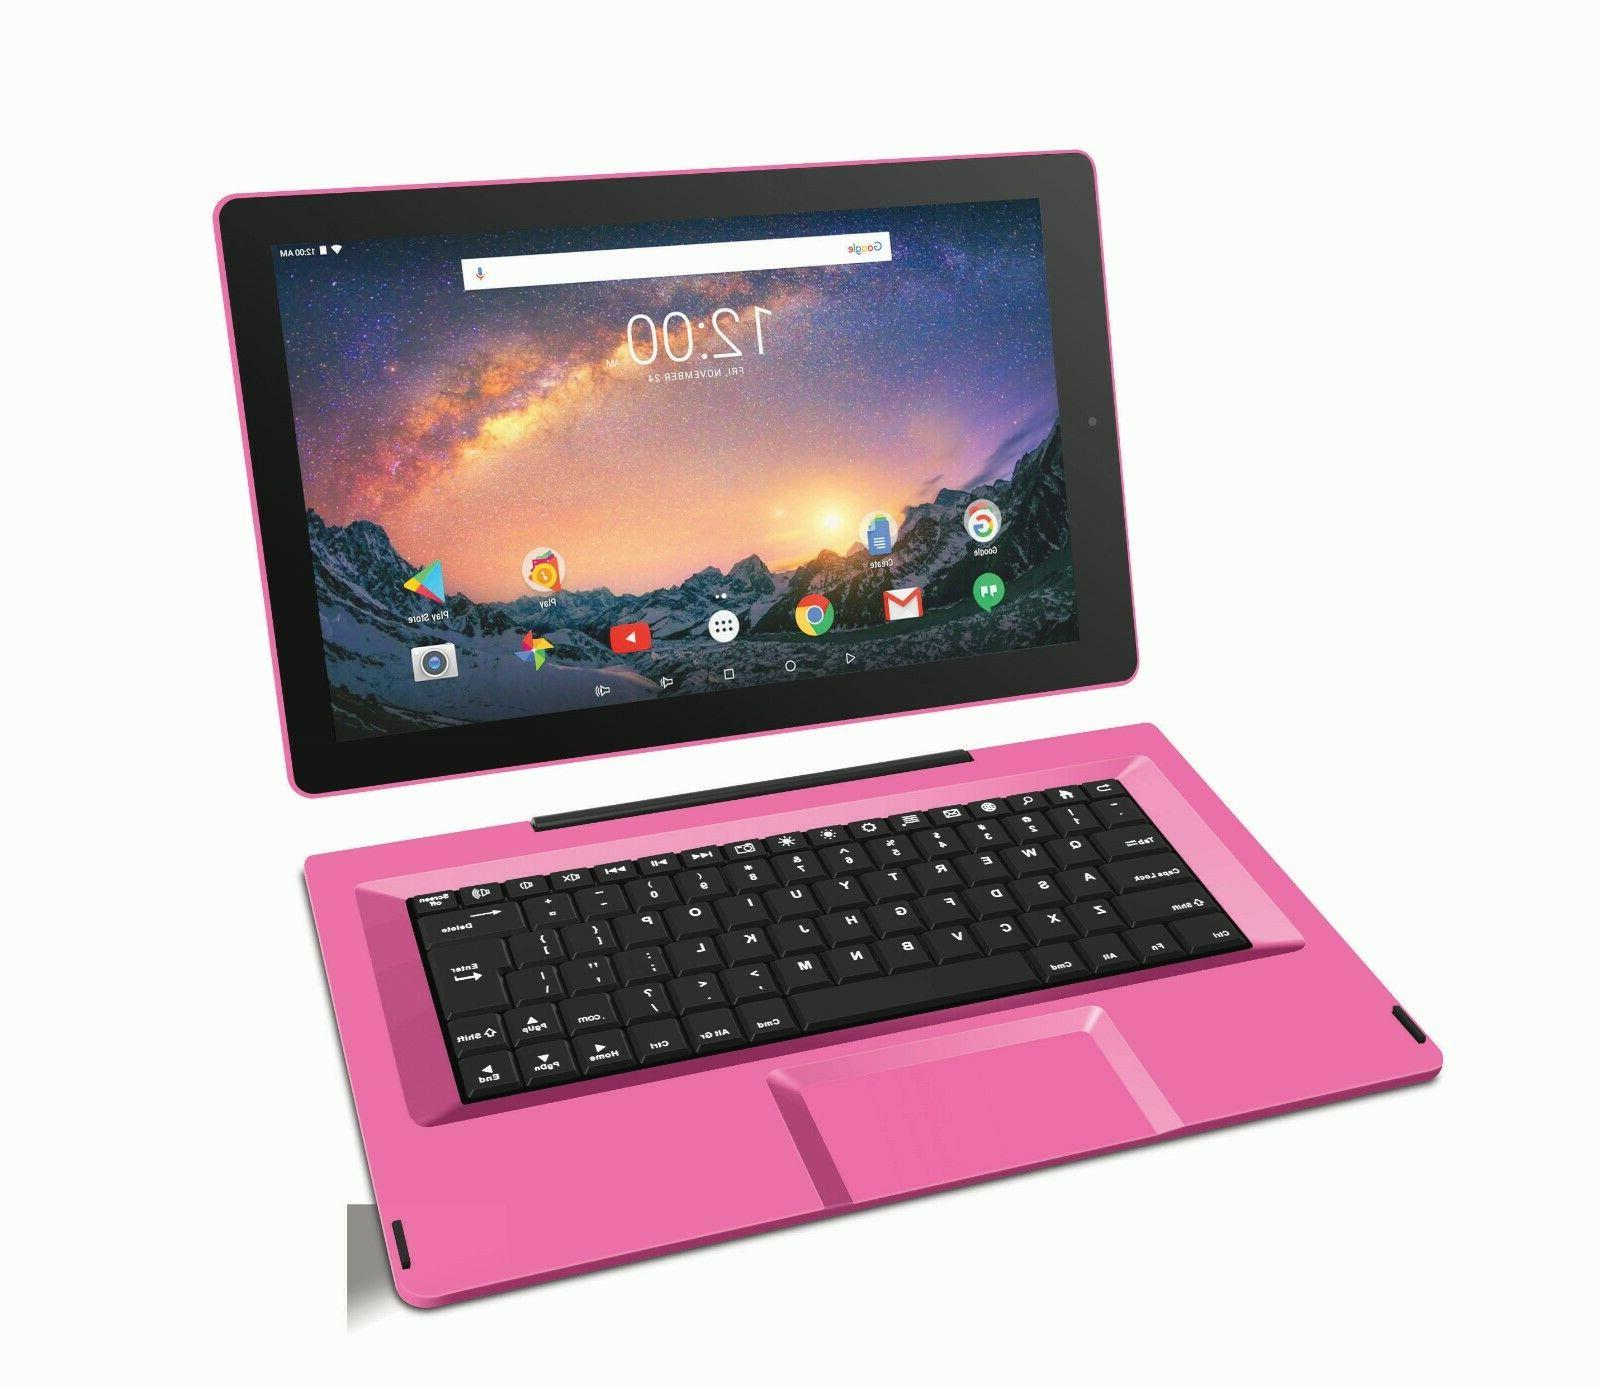 RCA 11.5 inch 2-in-1 Tablet Keyboard Android